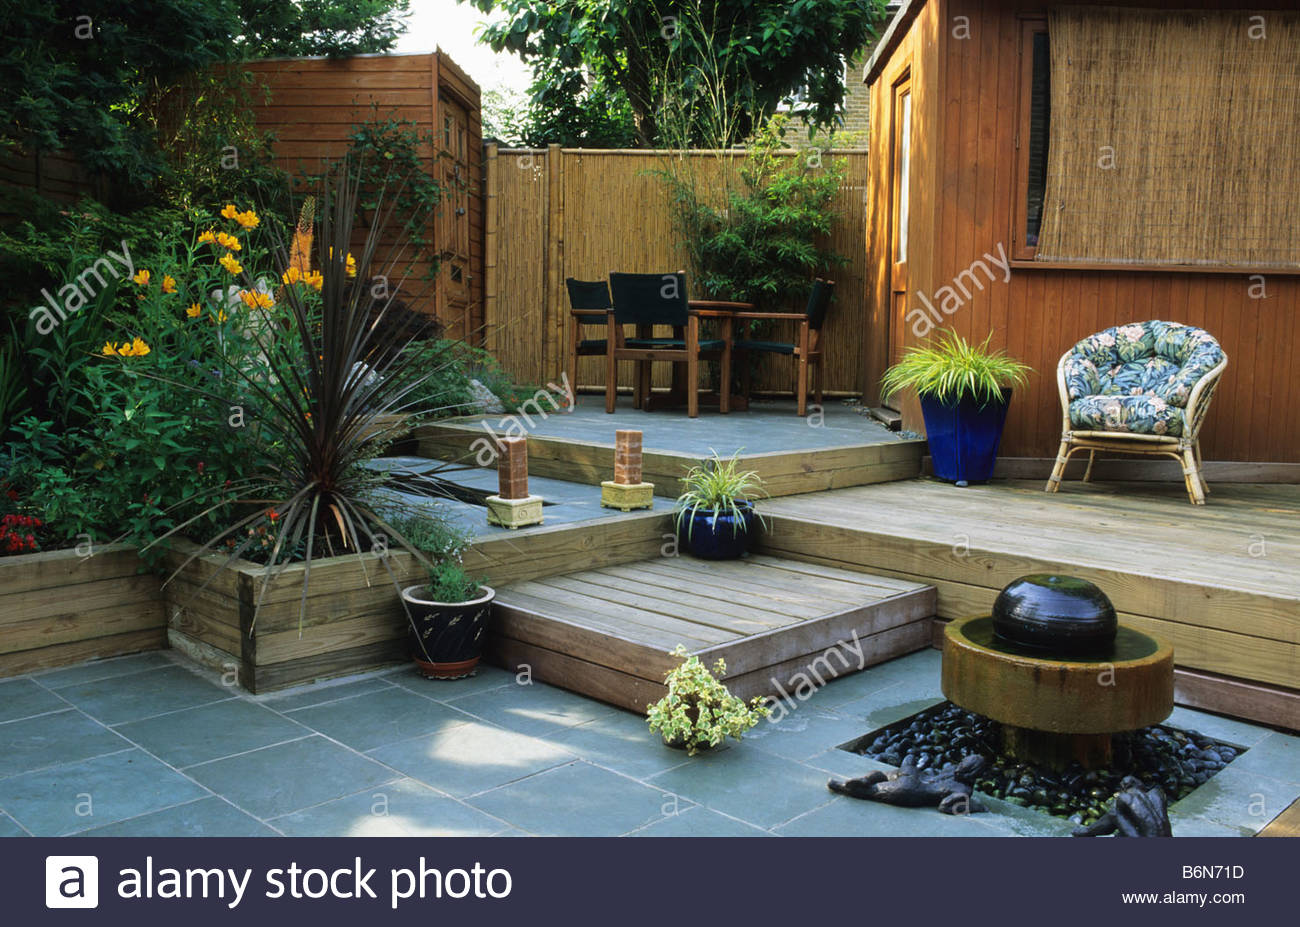 Private Garden London Design Kristina Fitzsimmons Small Town Patio Garden  With Split Levels Water Feature Seating